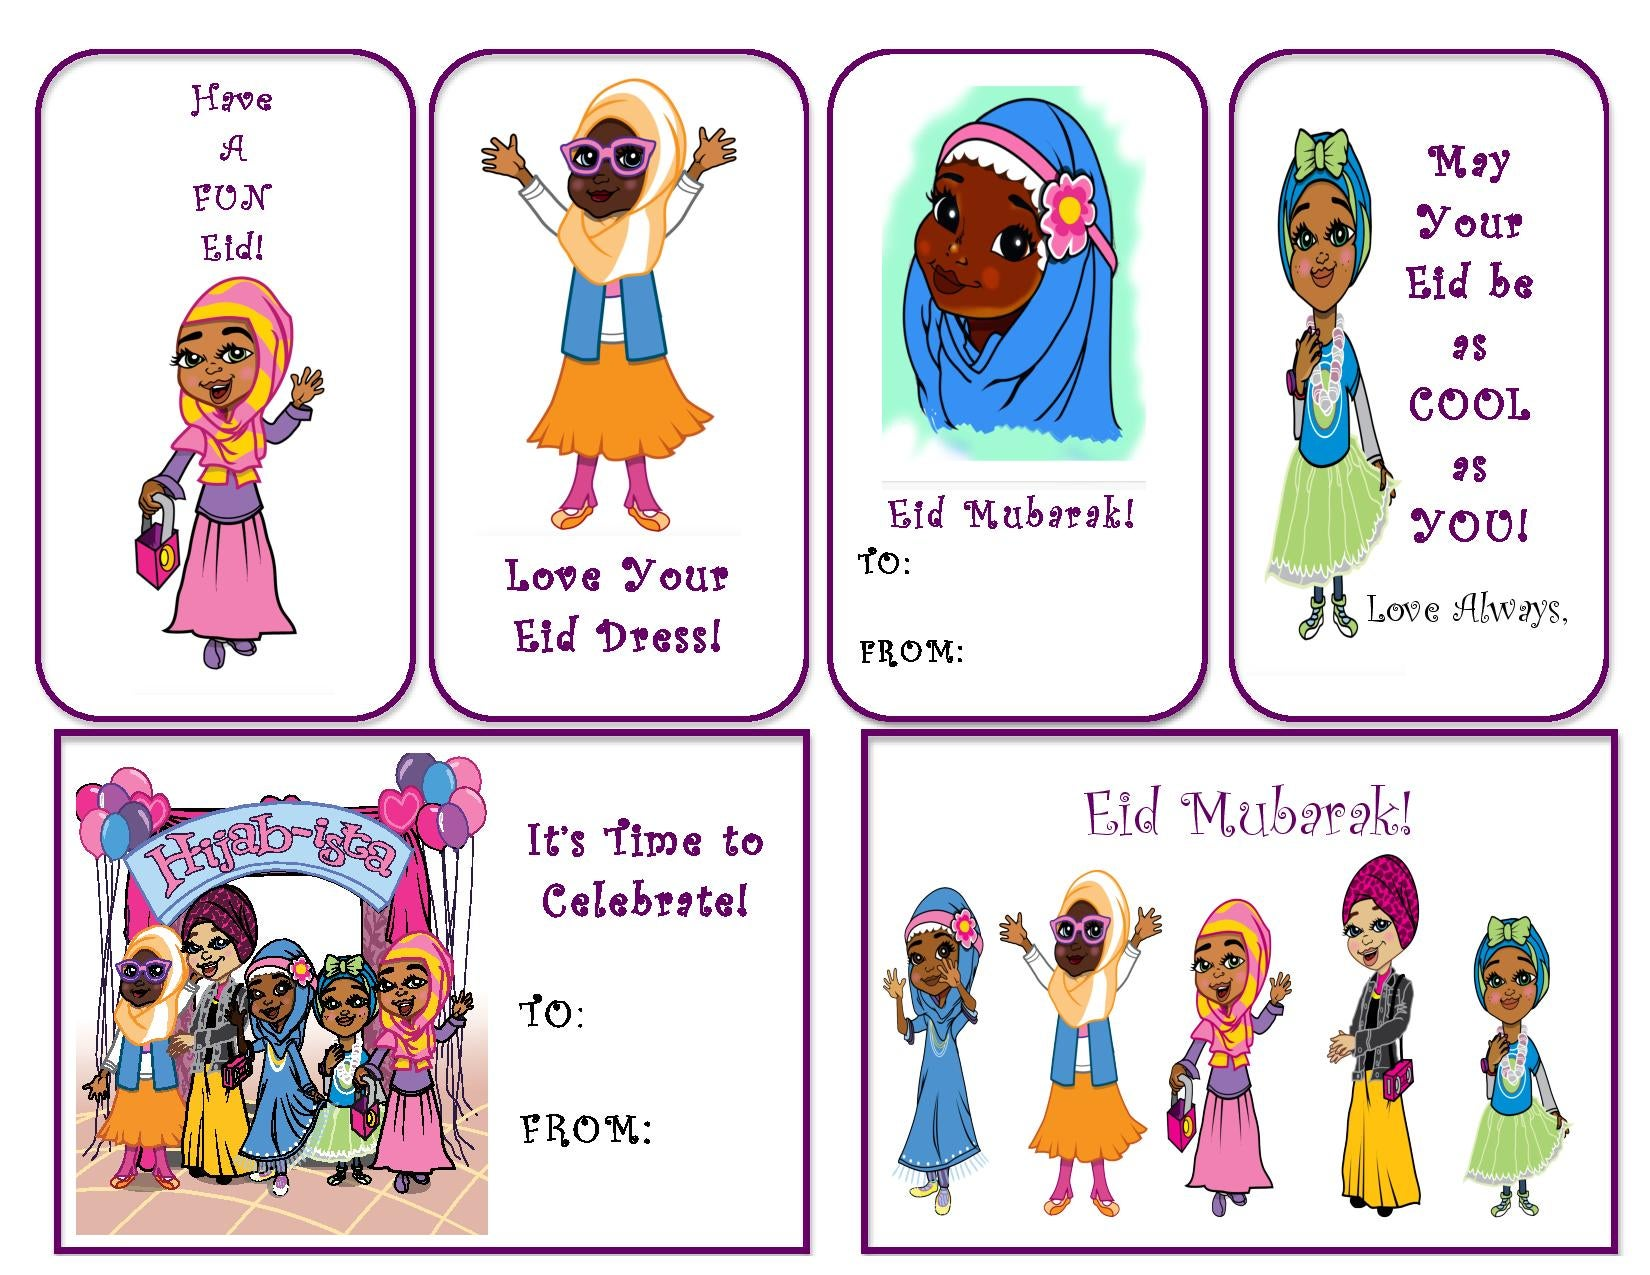 photograph relating to Eid Cards Printable titled Hijab~ista Eid Printable Playing cards